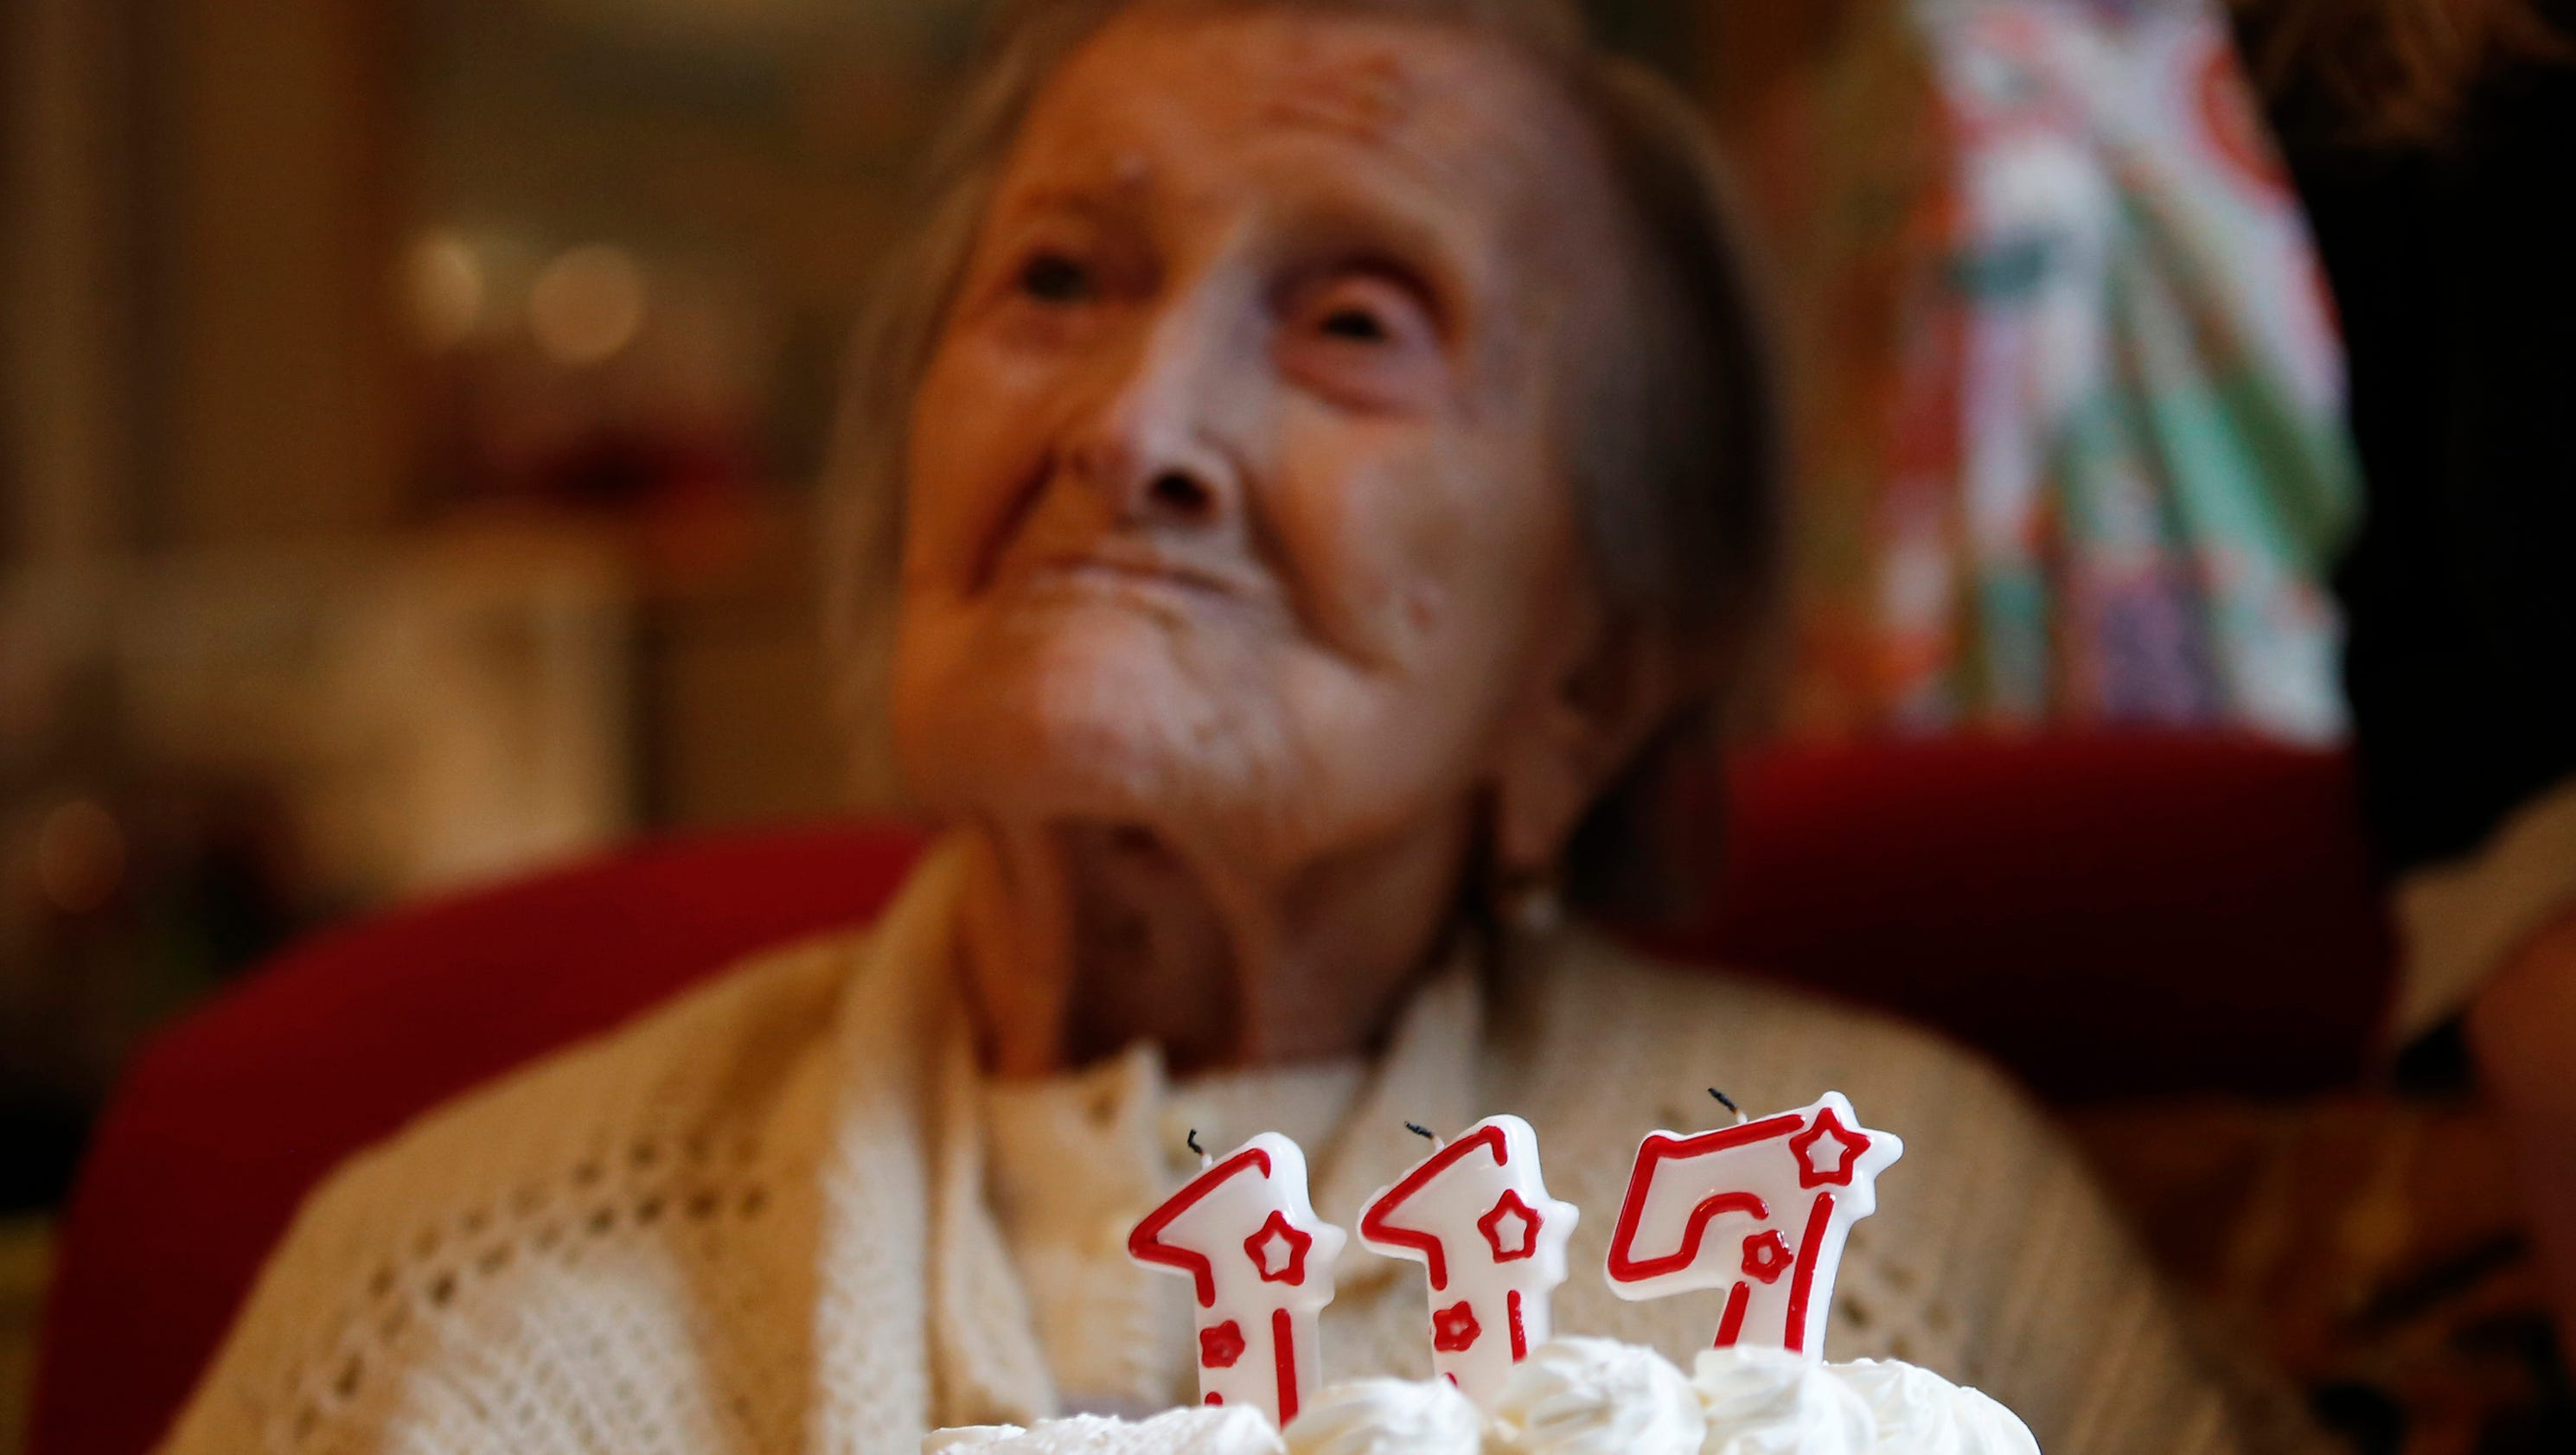 Emma Morano Is The World S Oldest Person At 117